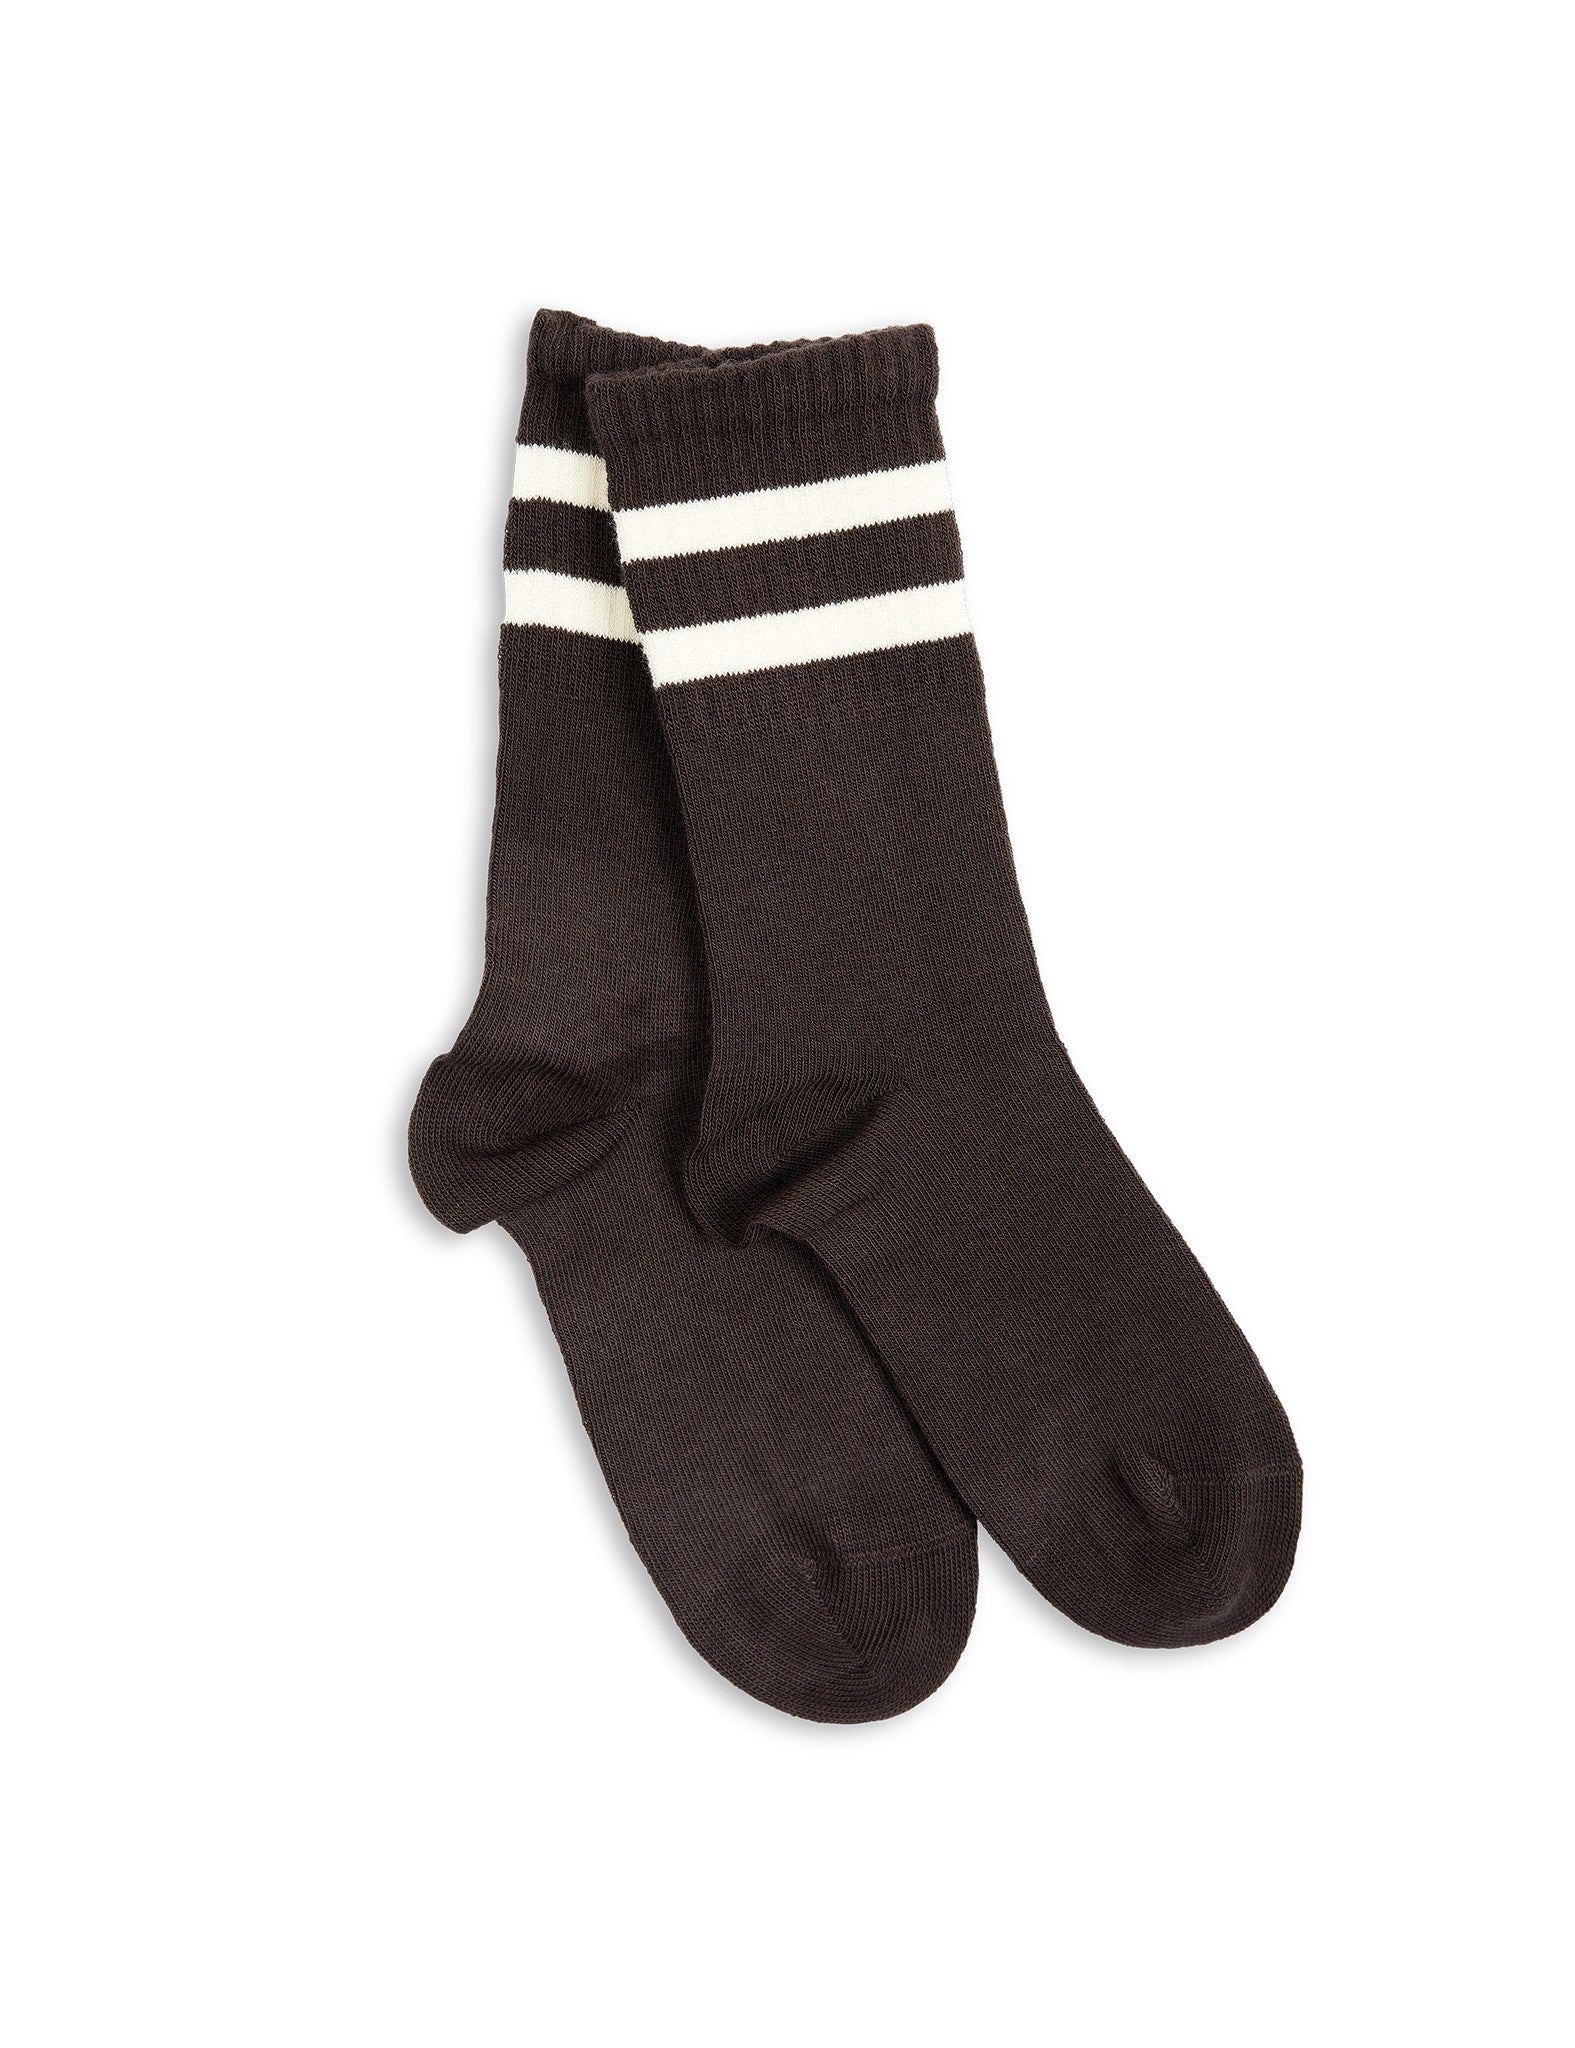 Stripe sock - brown - KID